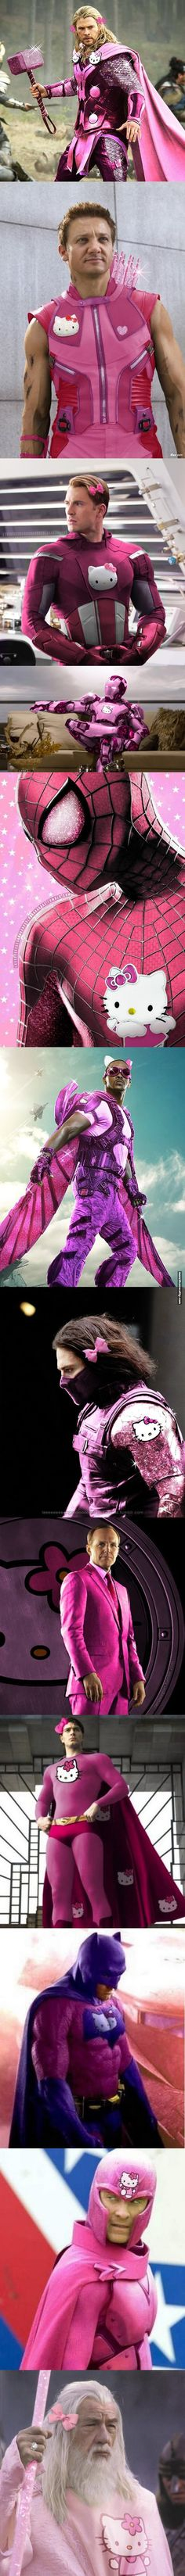 I'm not a fan of Hello Kitty. Lol Photoshop Experts Hello Kitty-fy Masculine Superheroes With Sparkly Pink Costumes Funny Pins, Funny Memes, Hilarious, Jokes, Pink Costume, Marvel, Humor Grafico, Red Hood, Nightwing